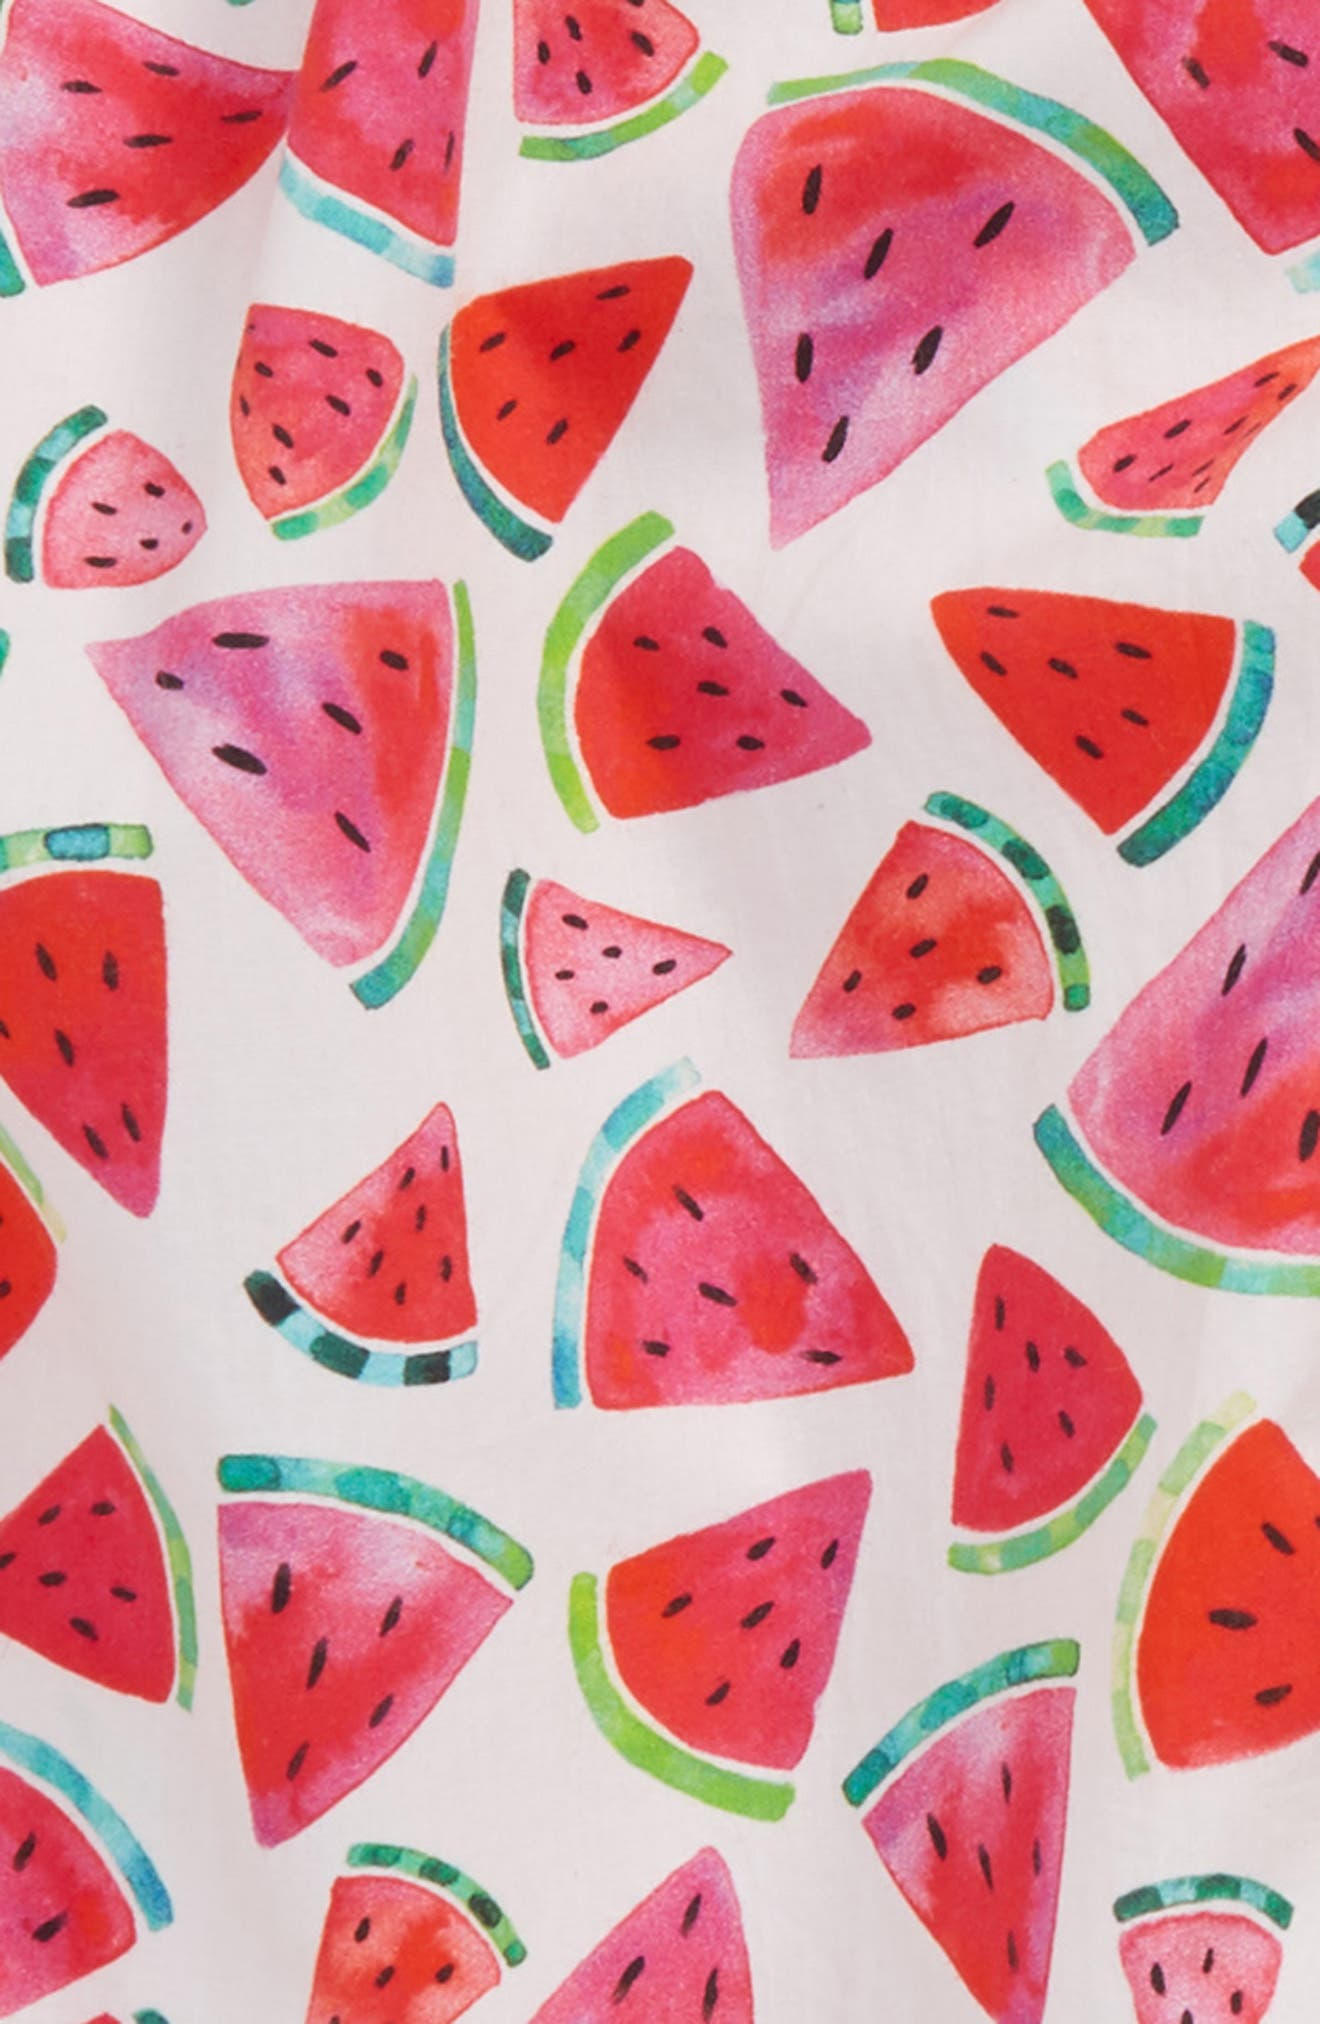 Watermelon Print Dress,                             Alternate thumbnail 2, color,                             Juicy Watermelon